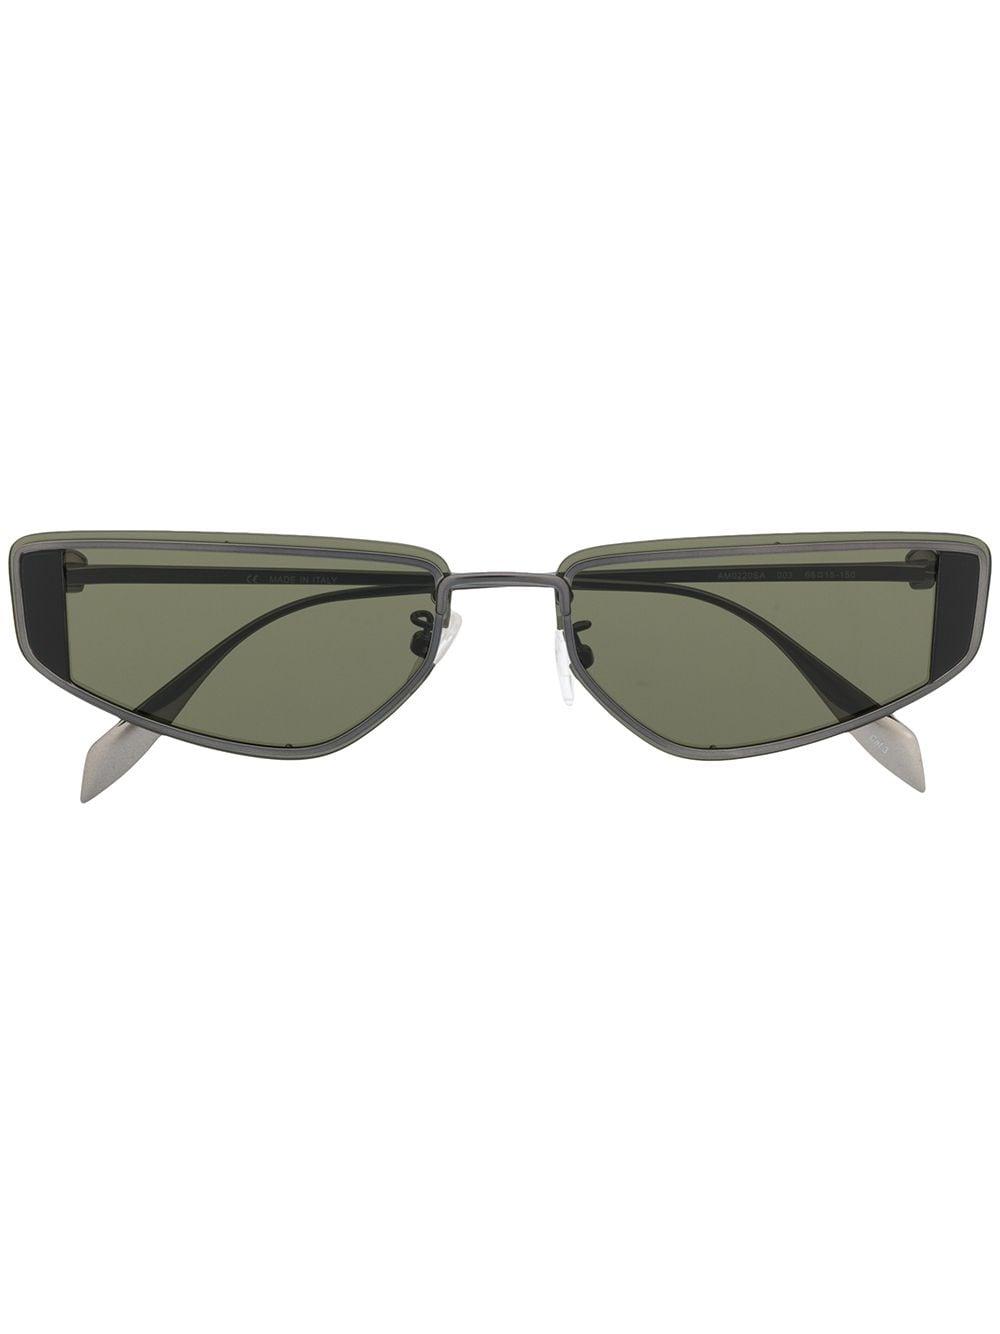 Am0220sa Sunglasses